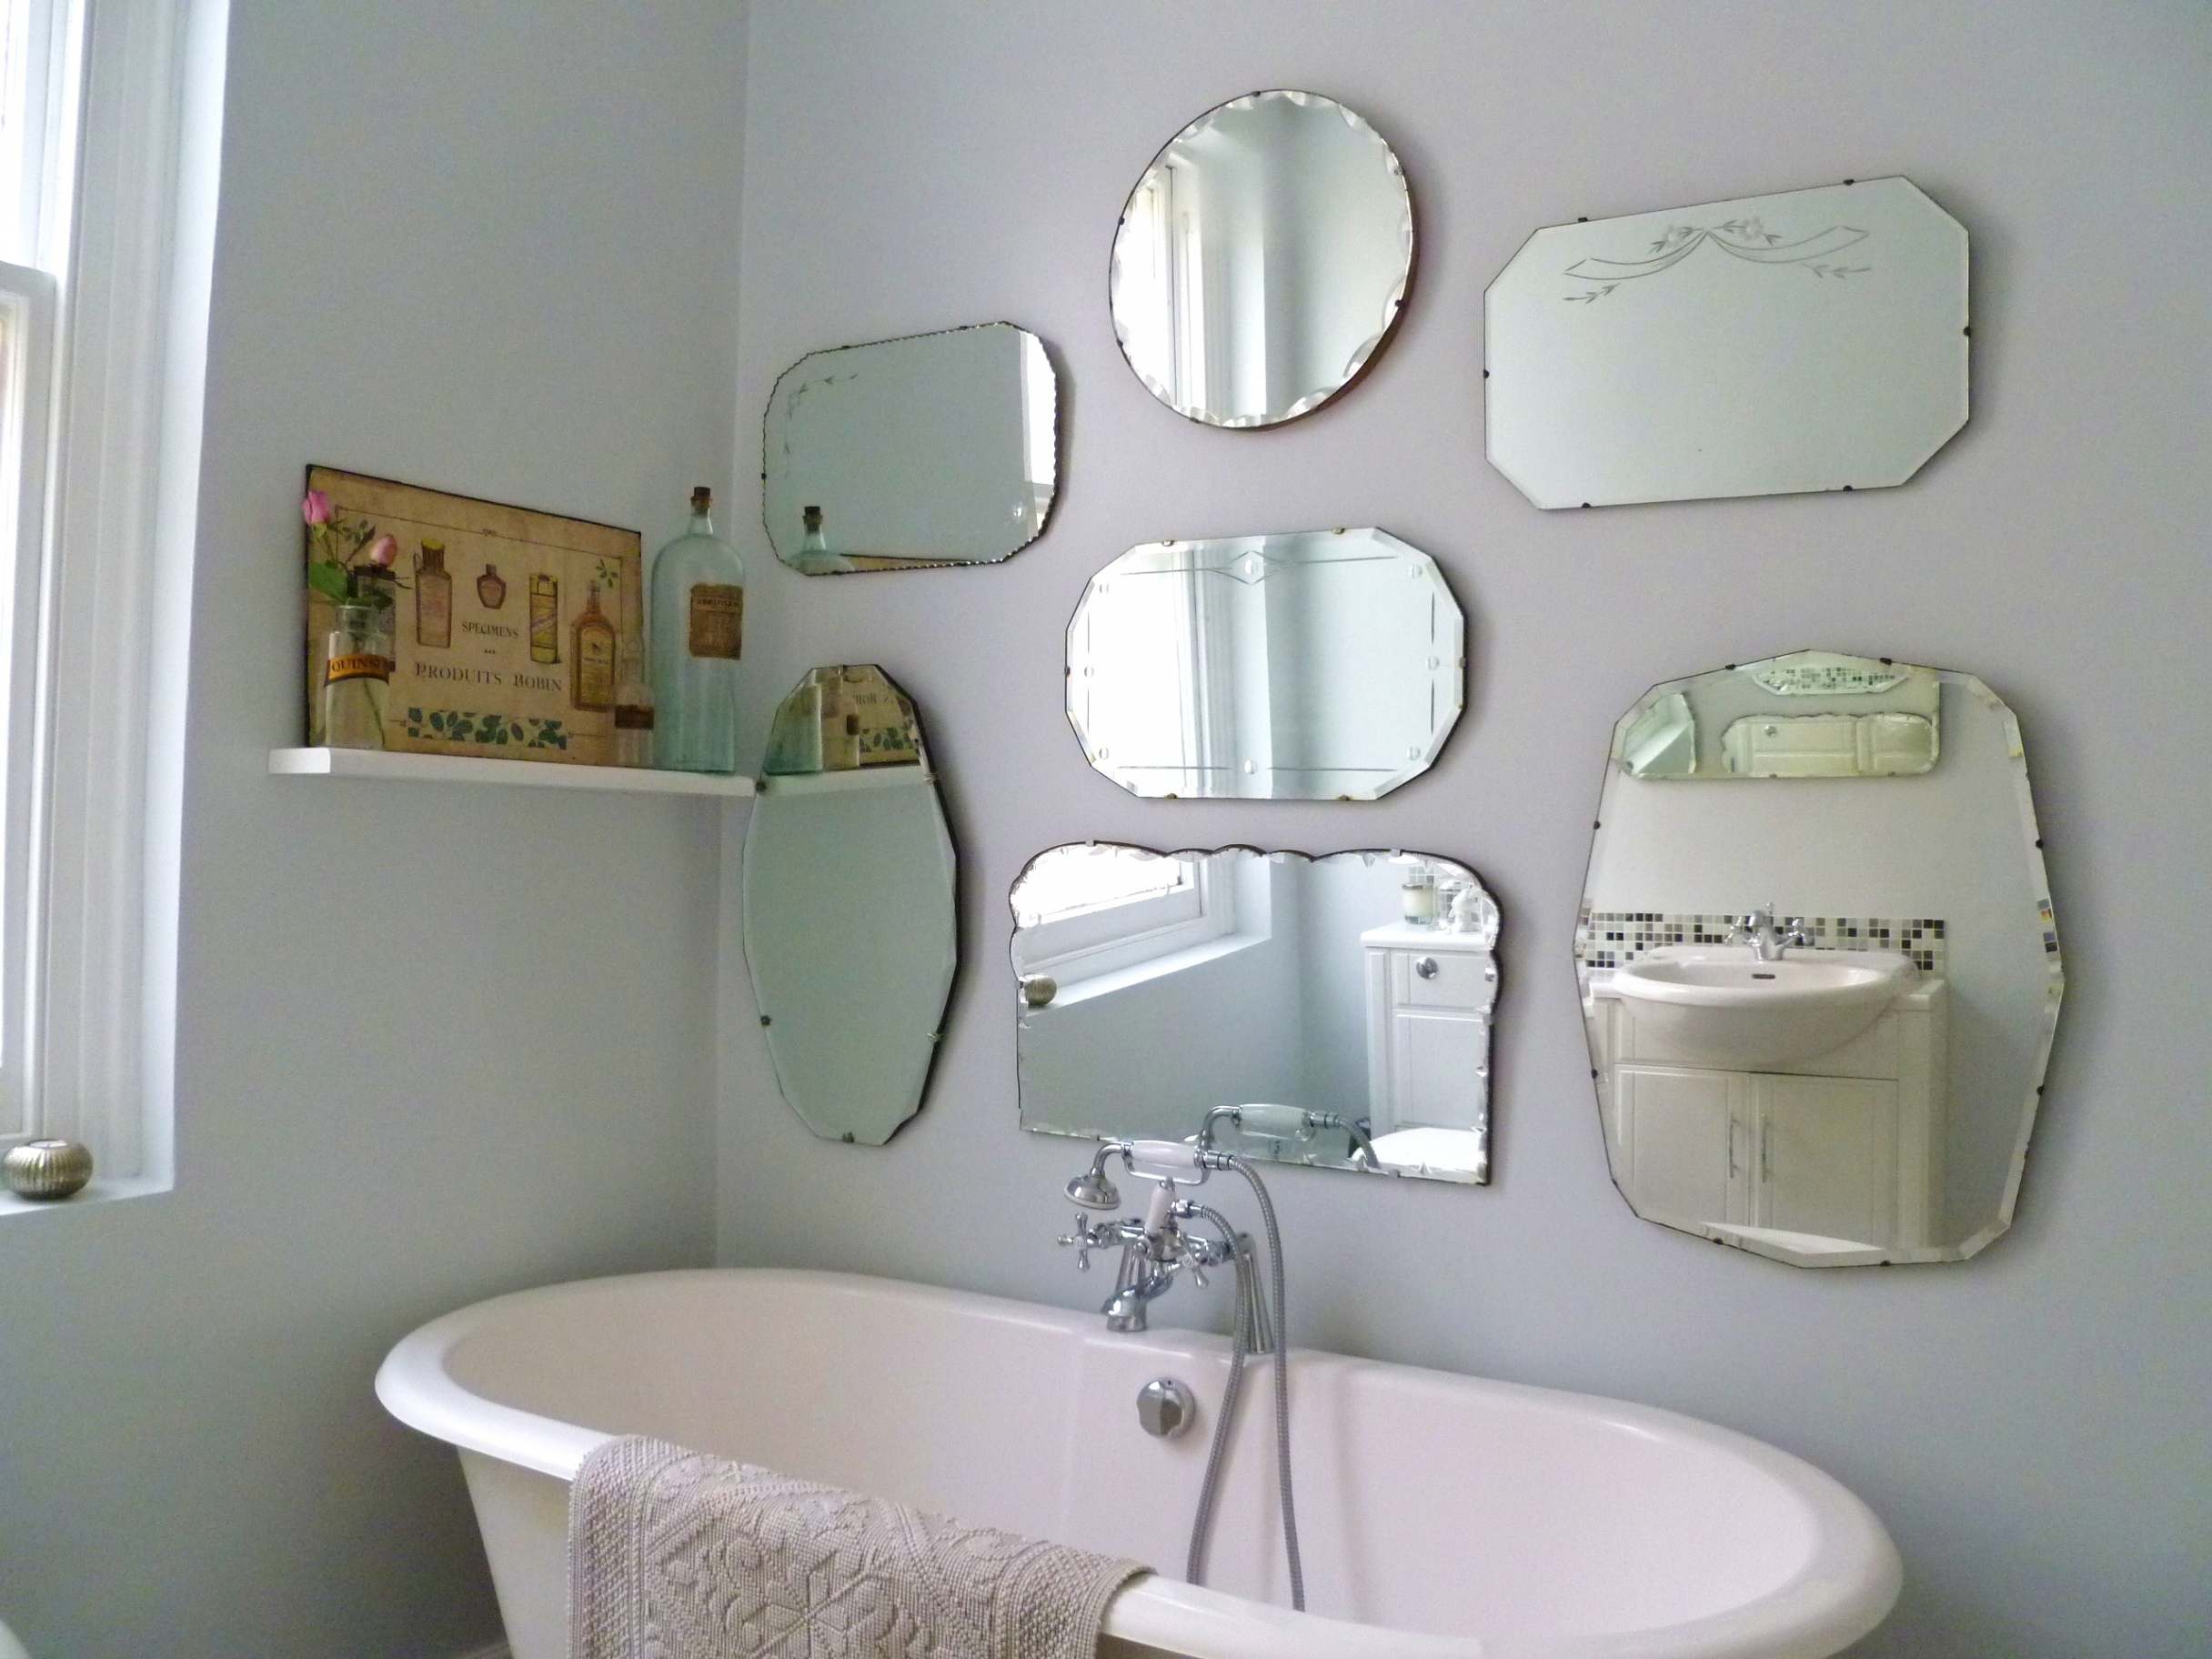 Antique Bathroom Mirrors Sale Home Within Antique Bathroom Mirrors Sale (Image 5 of 15)